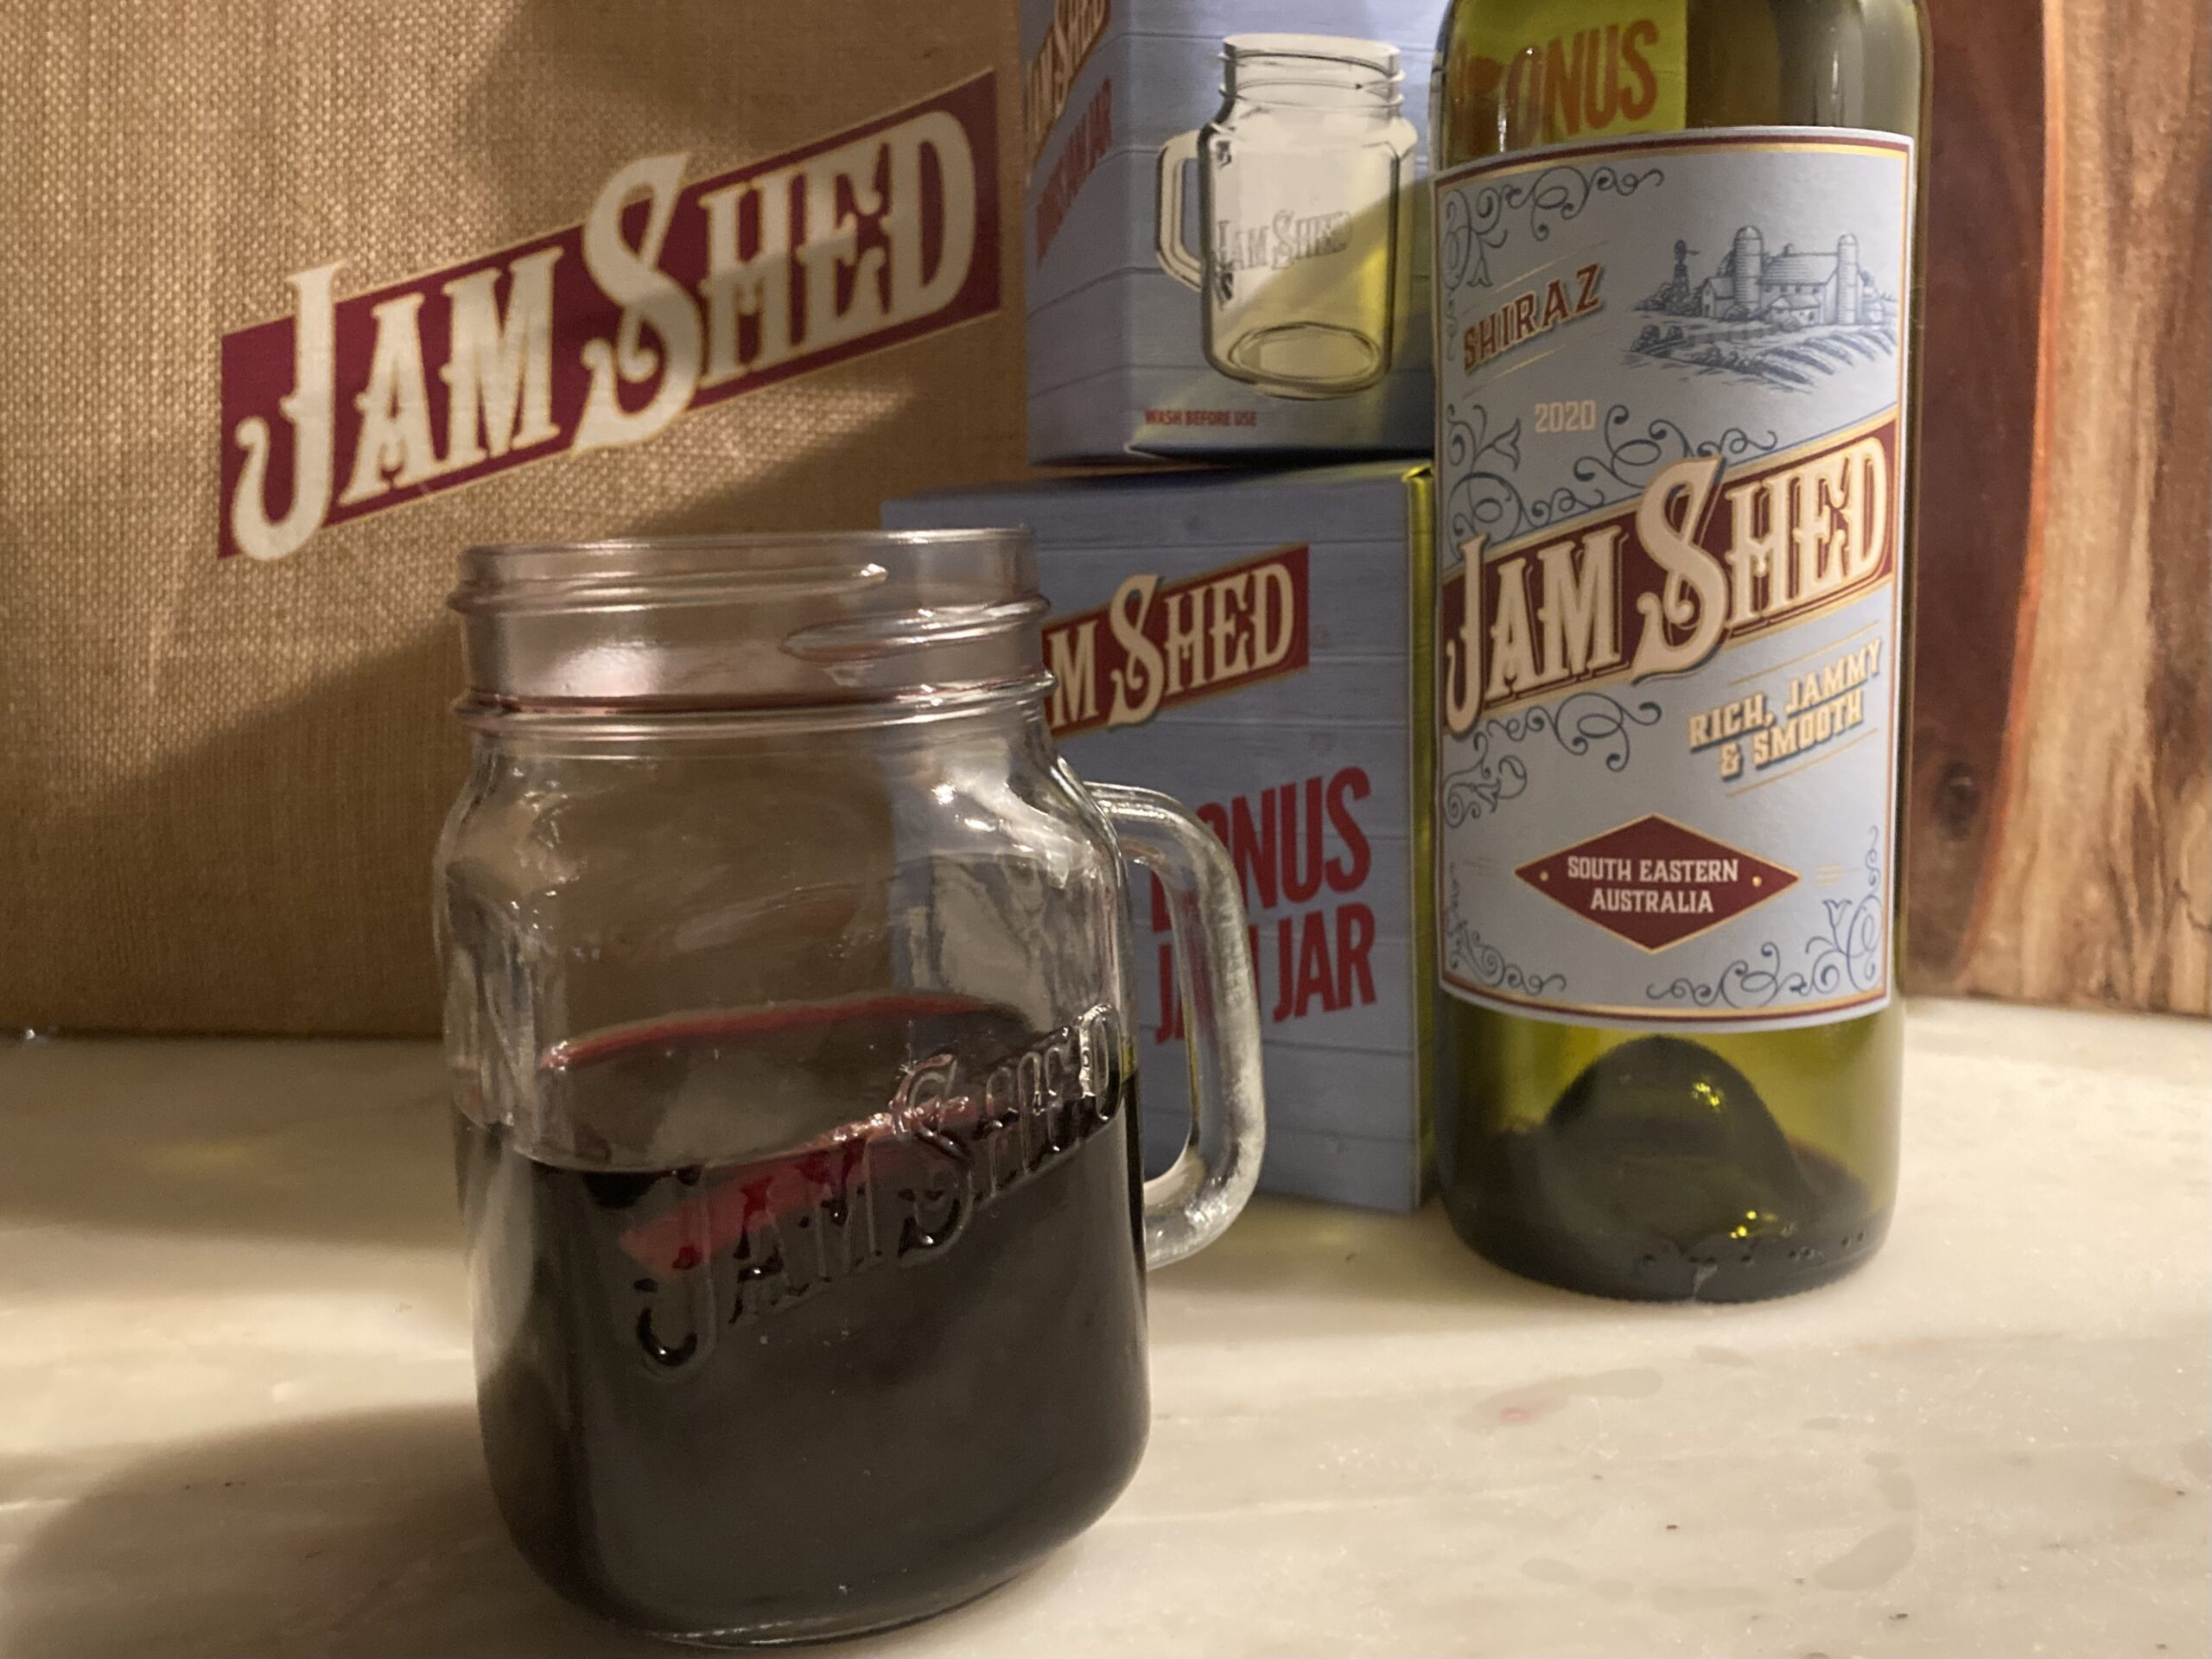 Jam Shed Mulled Wine